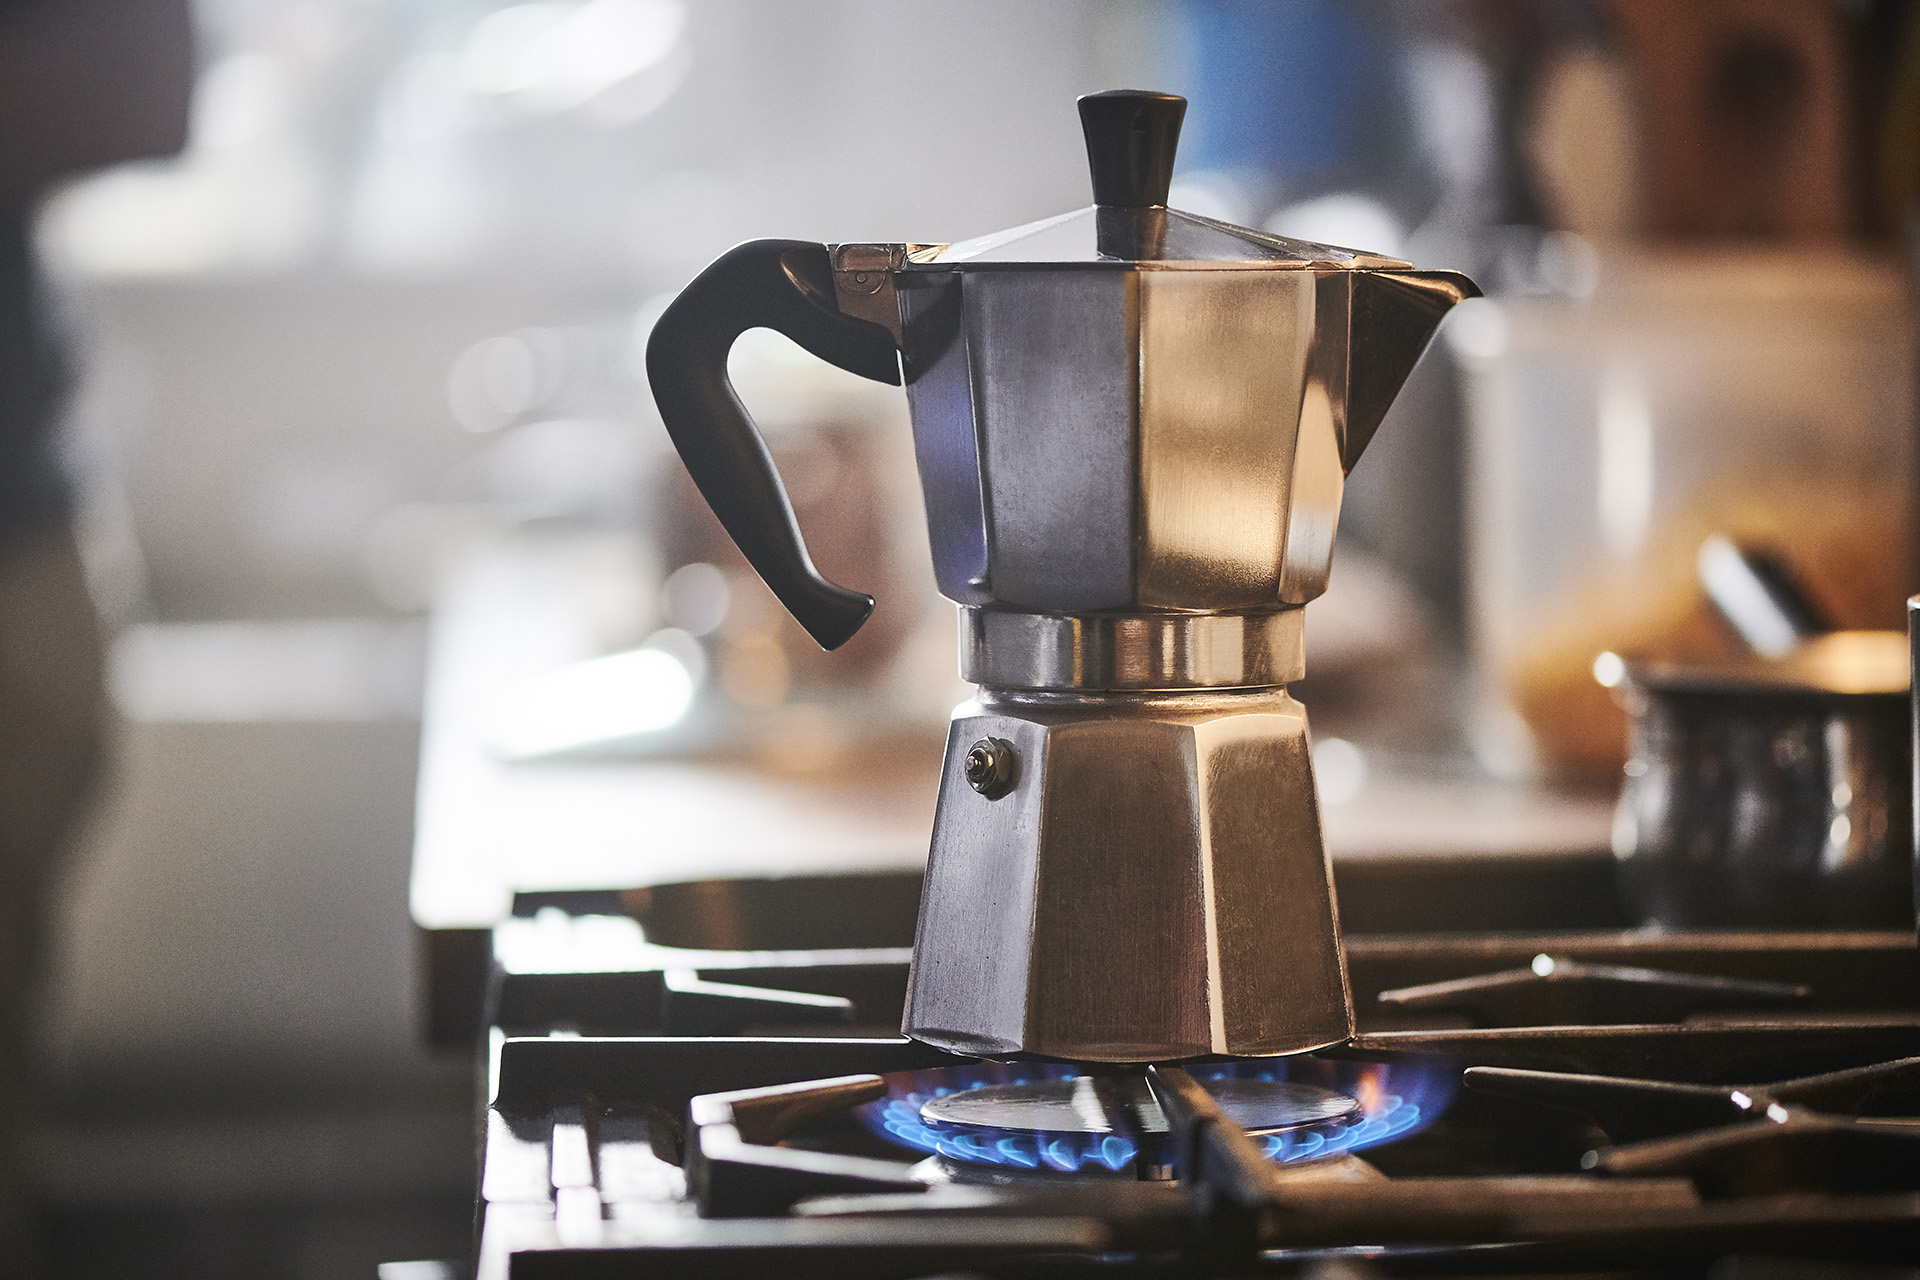 A cafetera italiana on a LPG powered hob